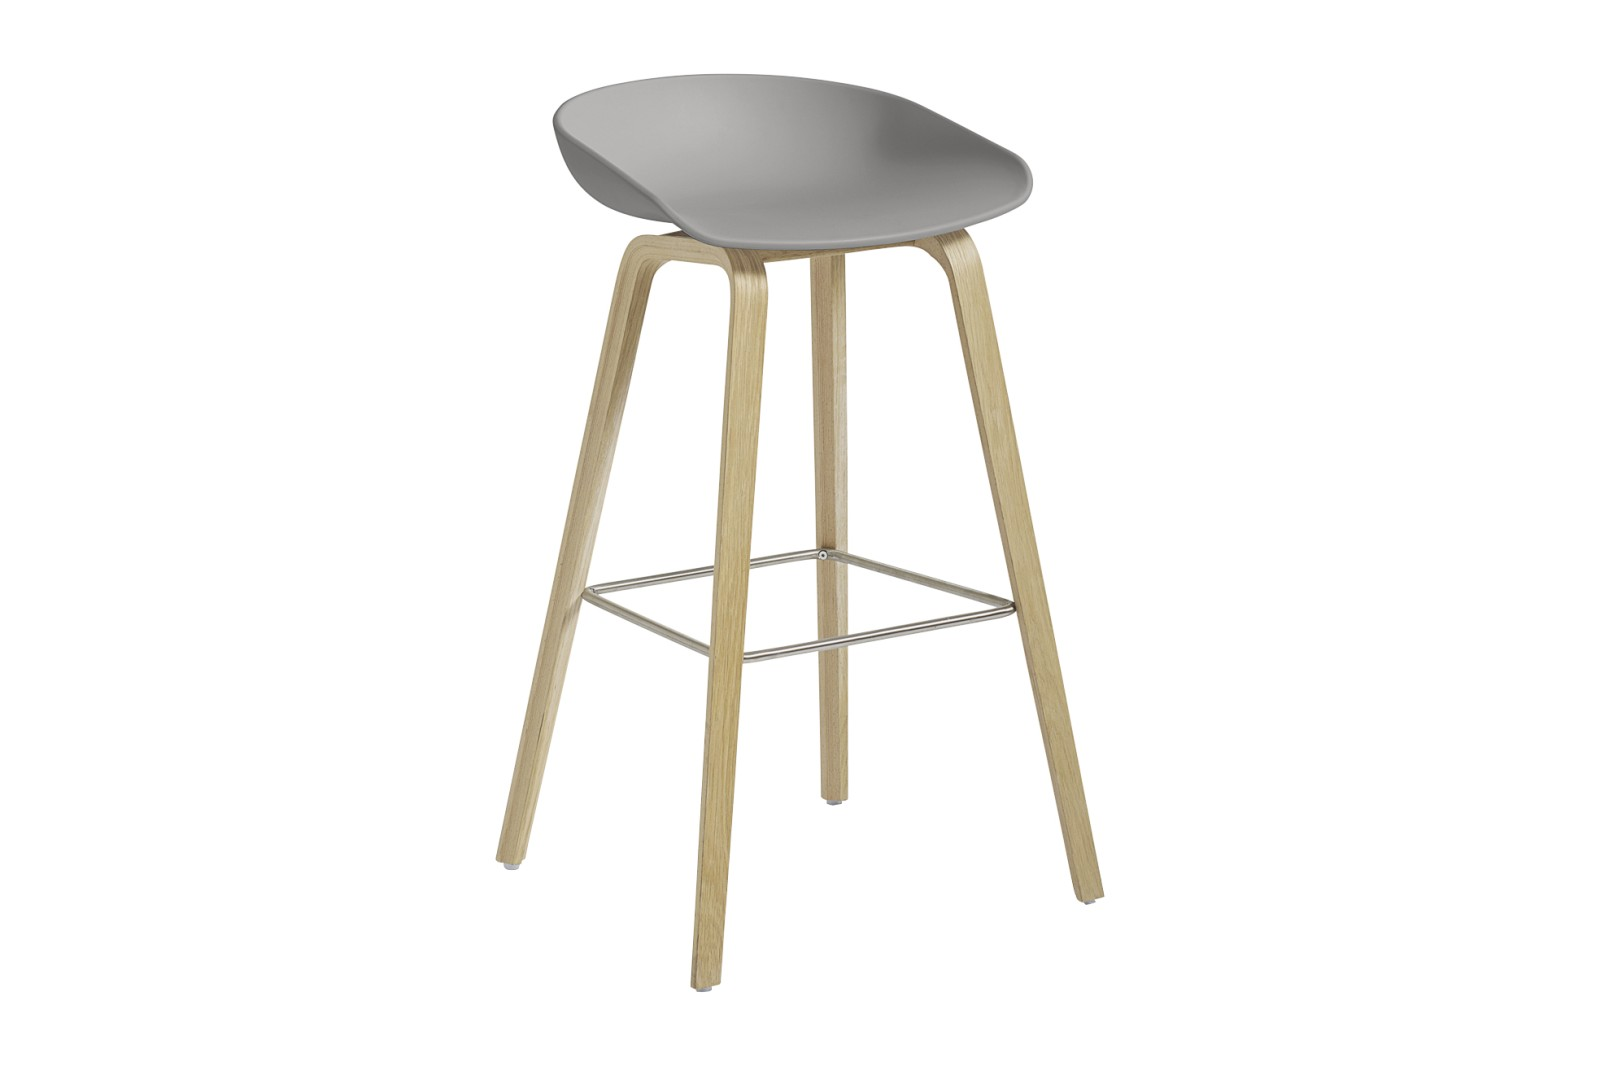 About A Stool AAS32 Matt Lacquered Oak Base, Concrete Grey Seat, High, Stainless Steel